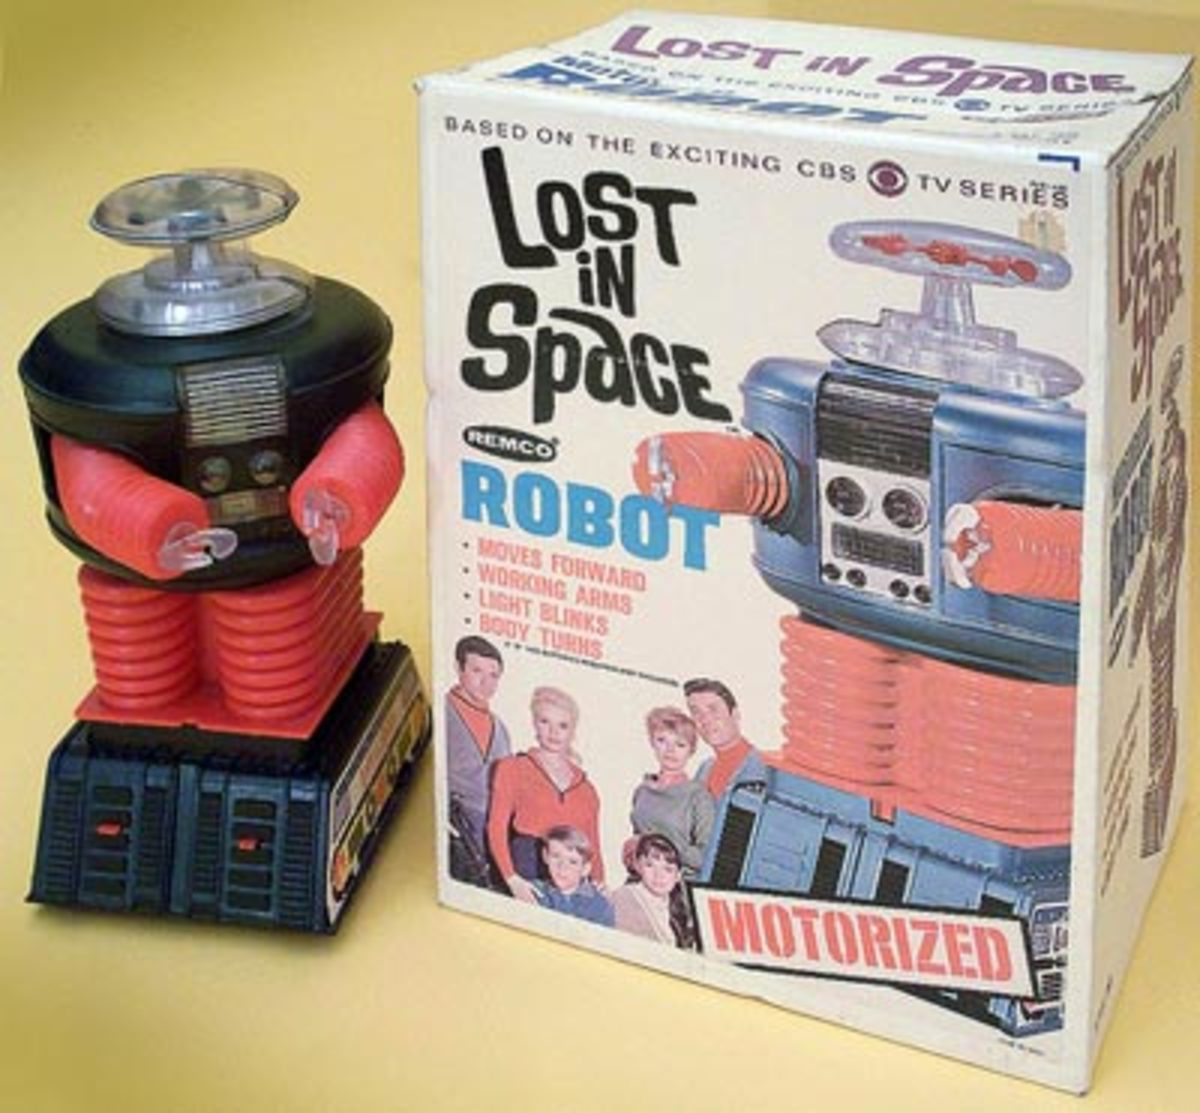 Original Lost in Space robot toy